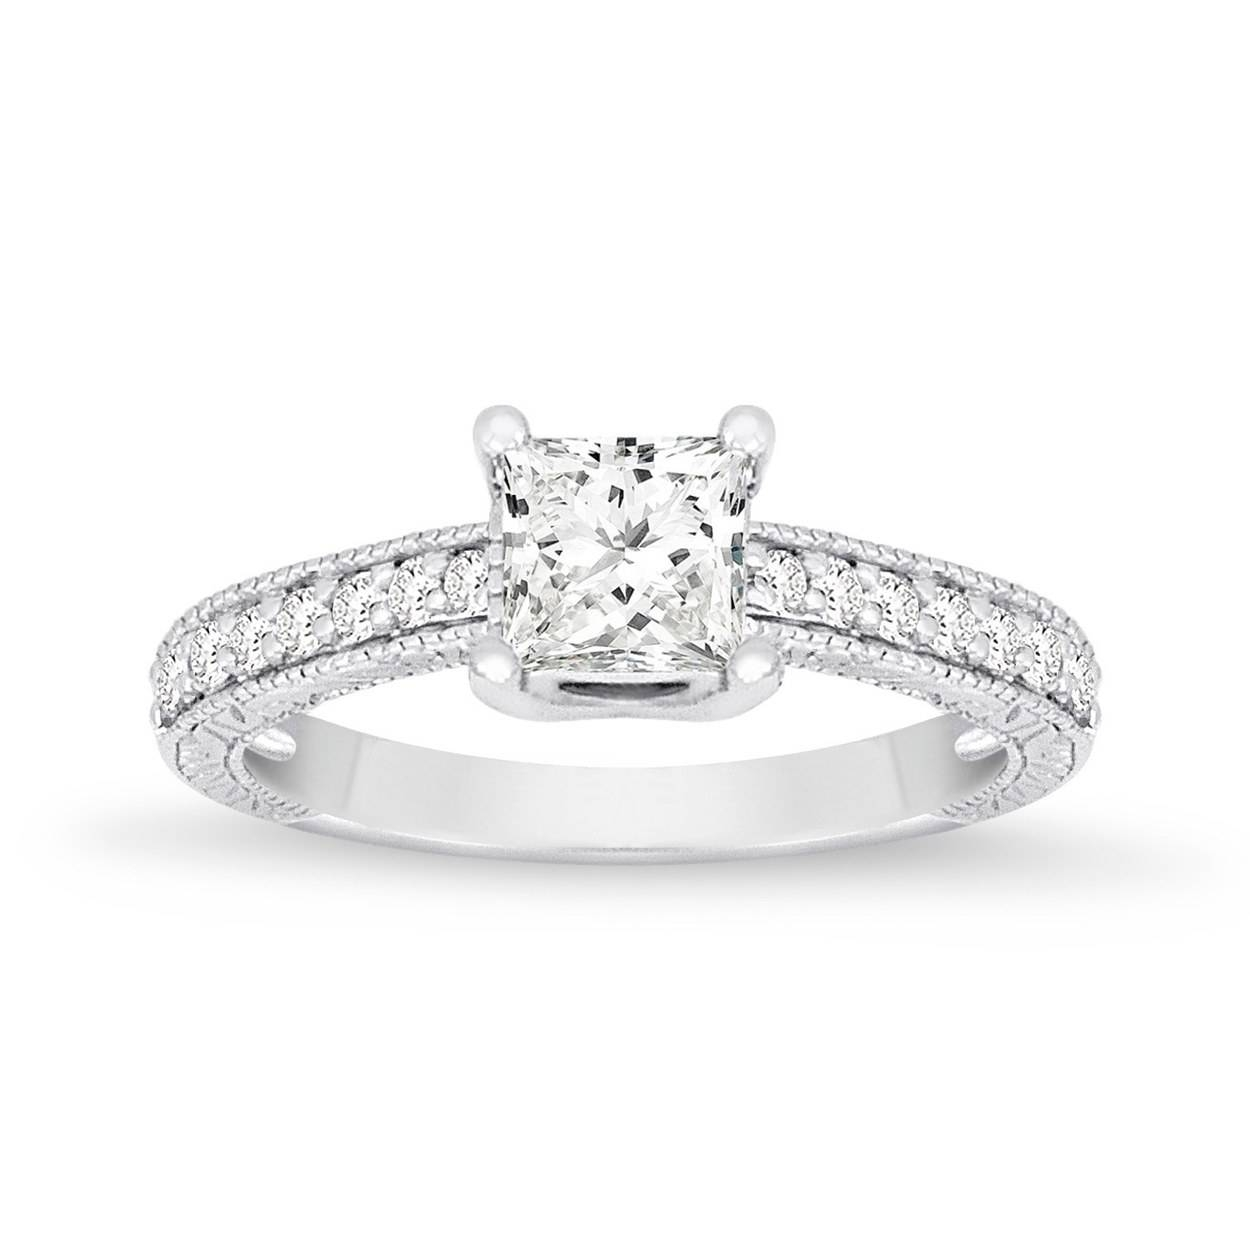 62 Diamond Engagement Rings Under $5,000 | Glamour Pertaining To Princess Engagement Rings (View 9 of 15)